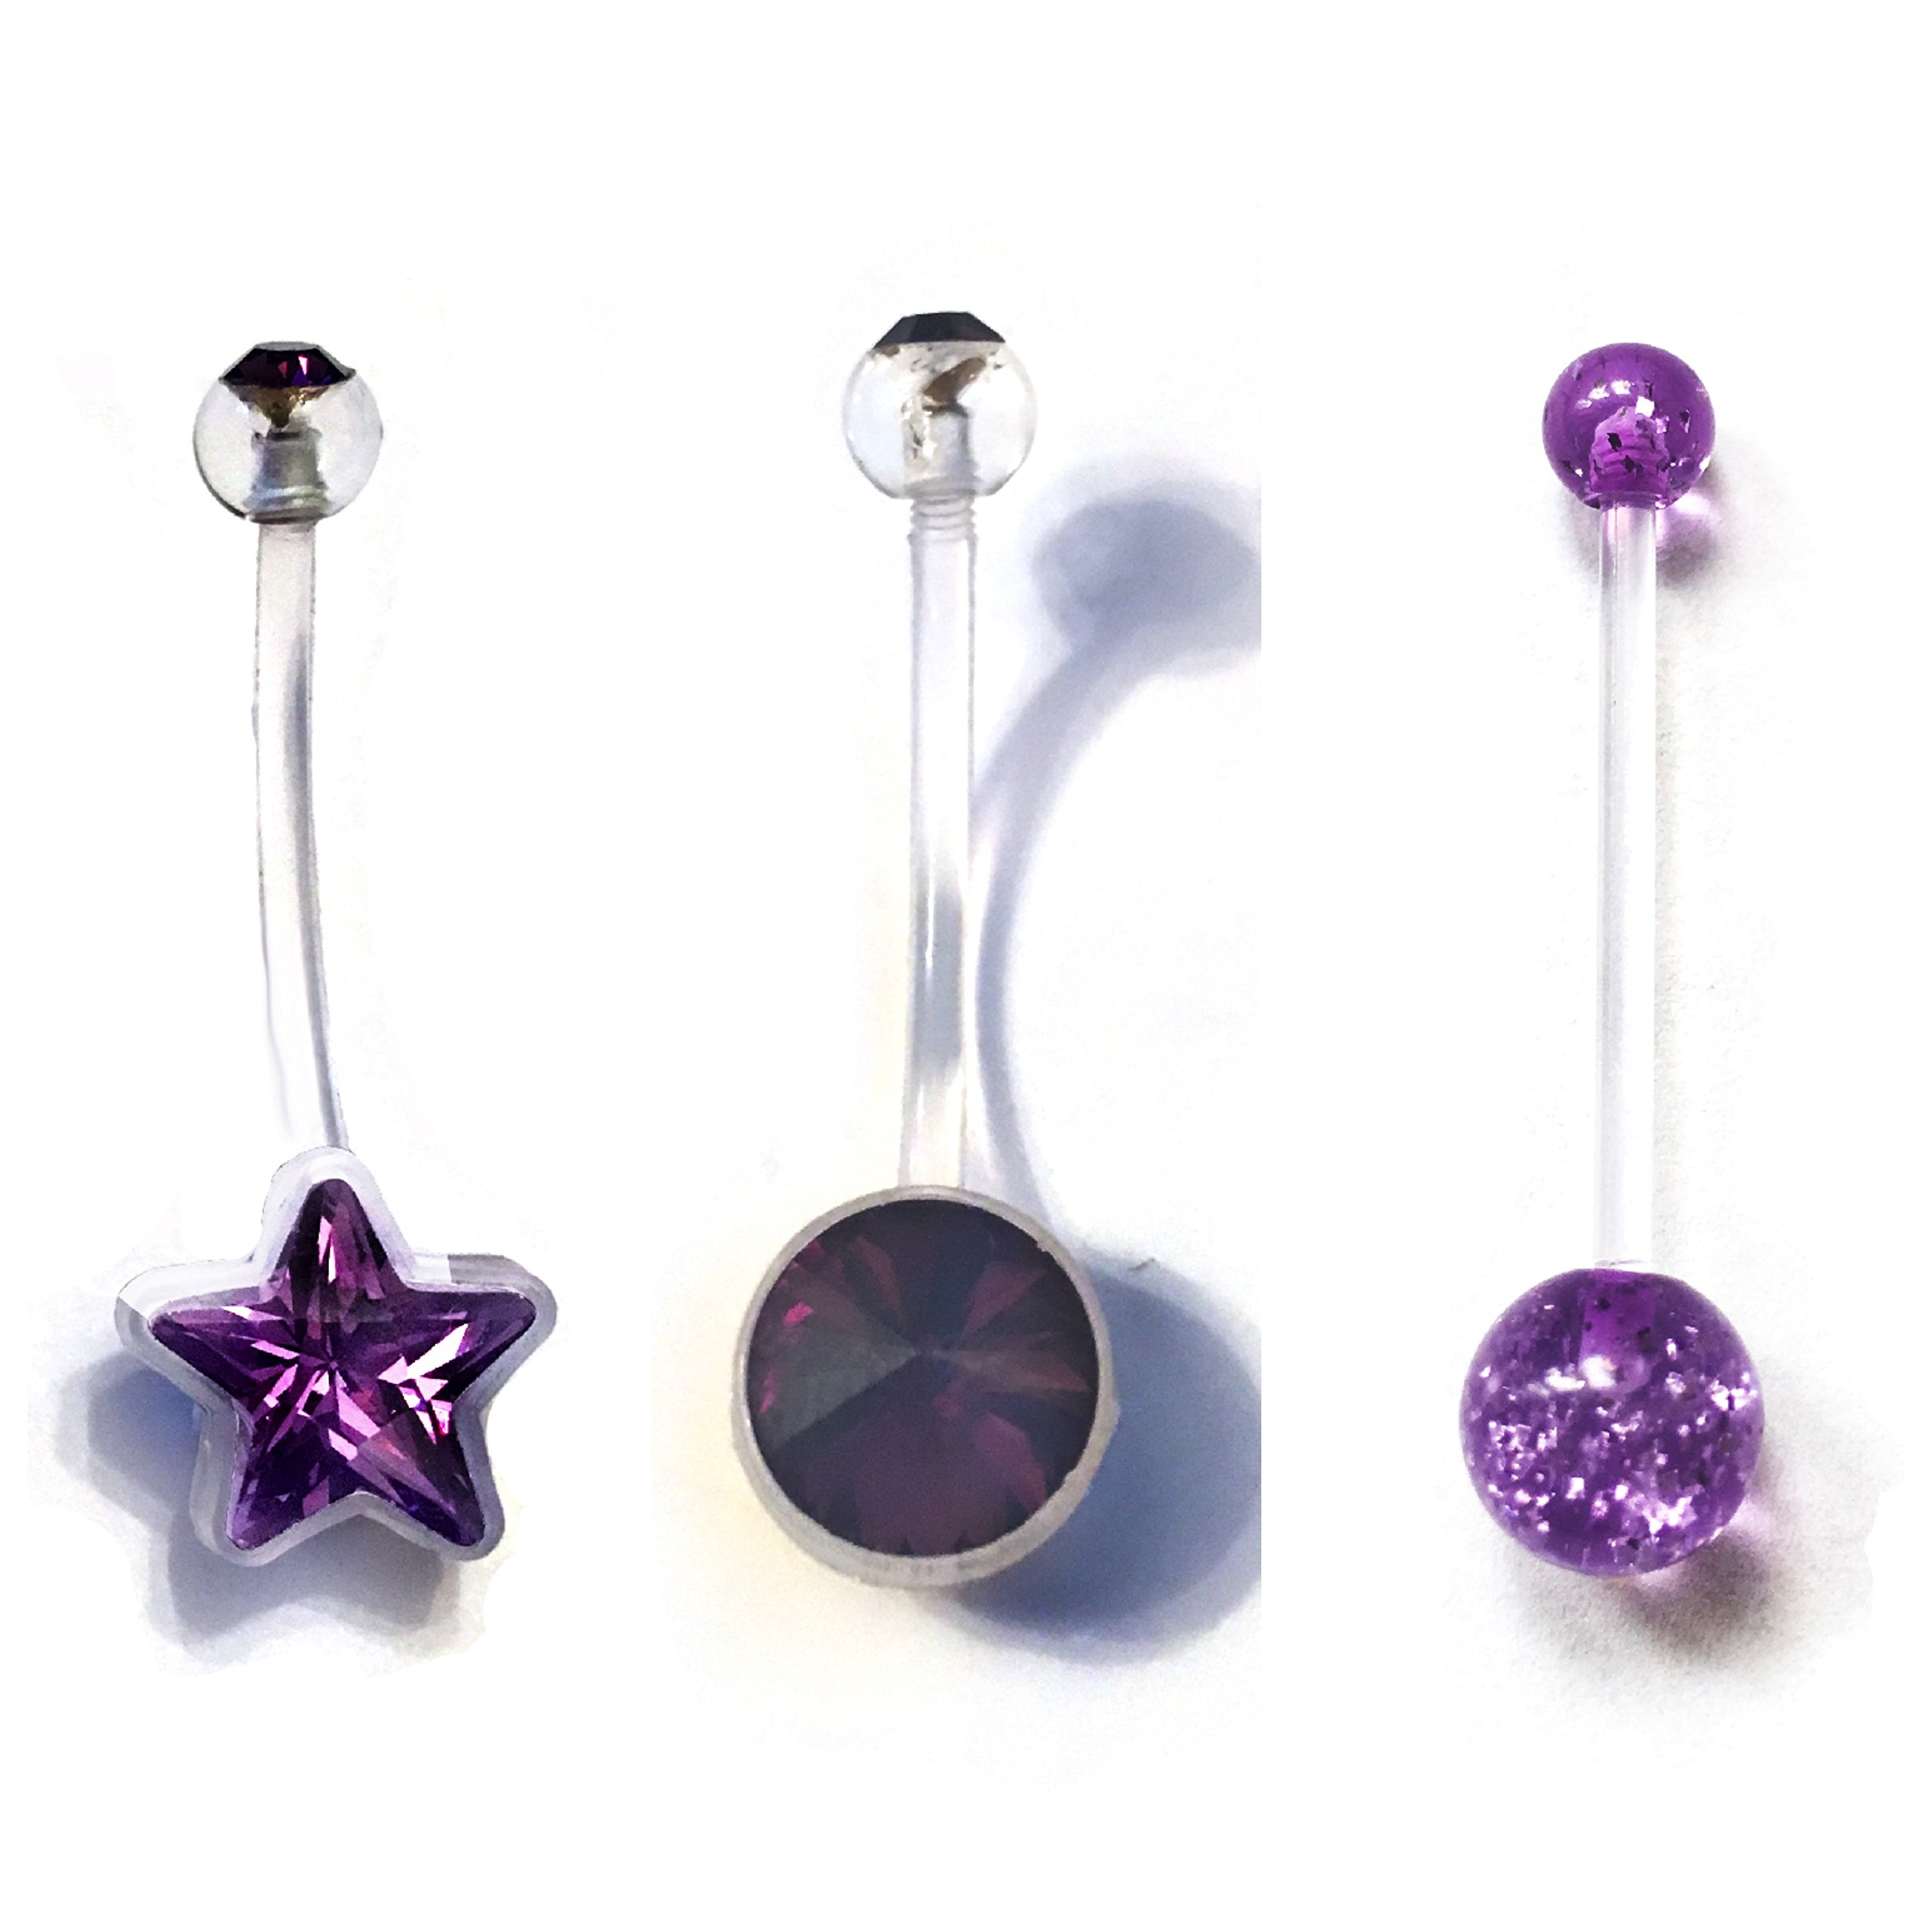 Loving My Bump Set of 3 Blue Pink Unisex Purple Girl/Boy Sets Pregnancy Maternity Belly Navel Bars bar PFTE Flexible Retainers Flexible Jewel, Glitter, Star or more choose (Purple star set)